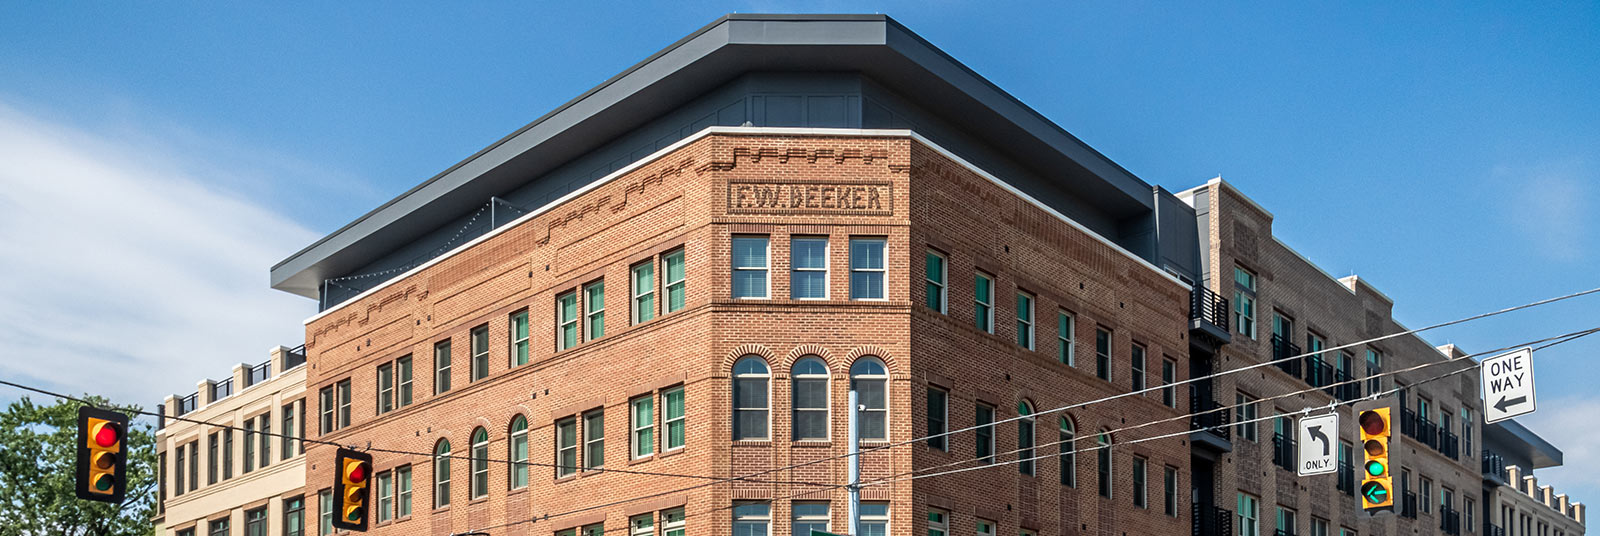 The F.W. Beeker building offers multi-family housing atop of first floor commercial spaces in Columbus, Ohio.